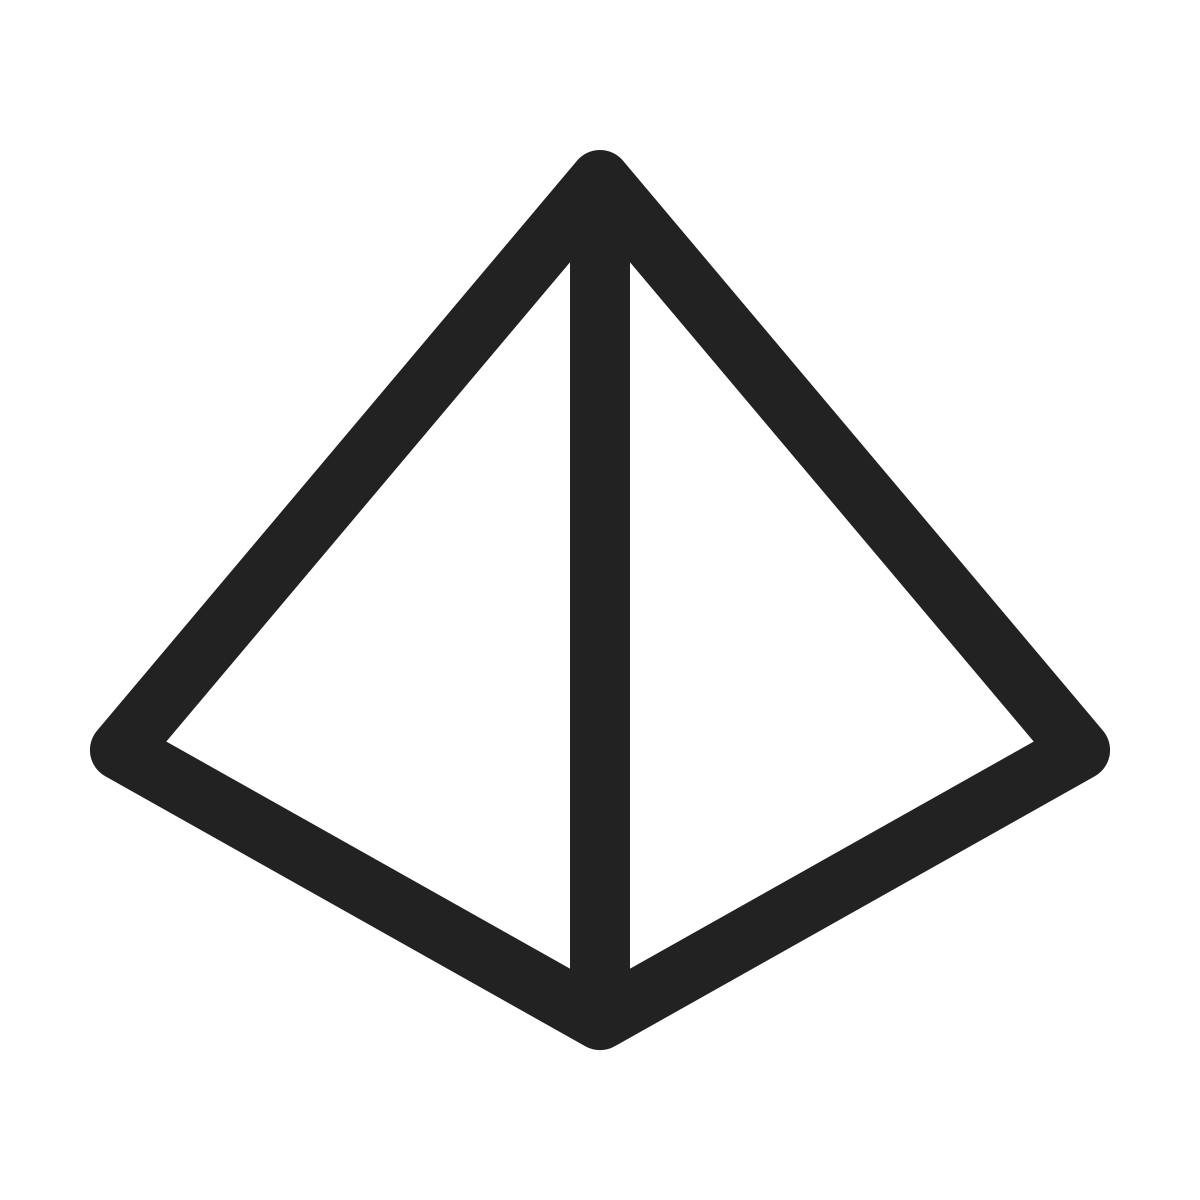 figure  shape  line  form  graphic  geometry  pyramid icon icon